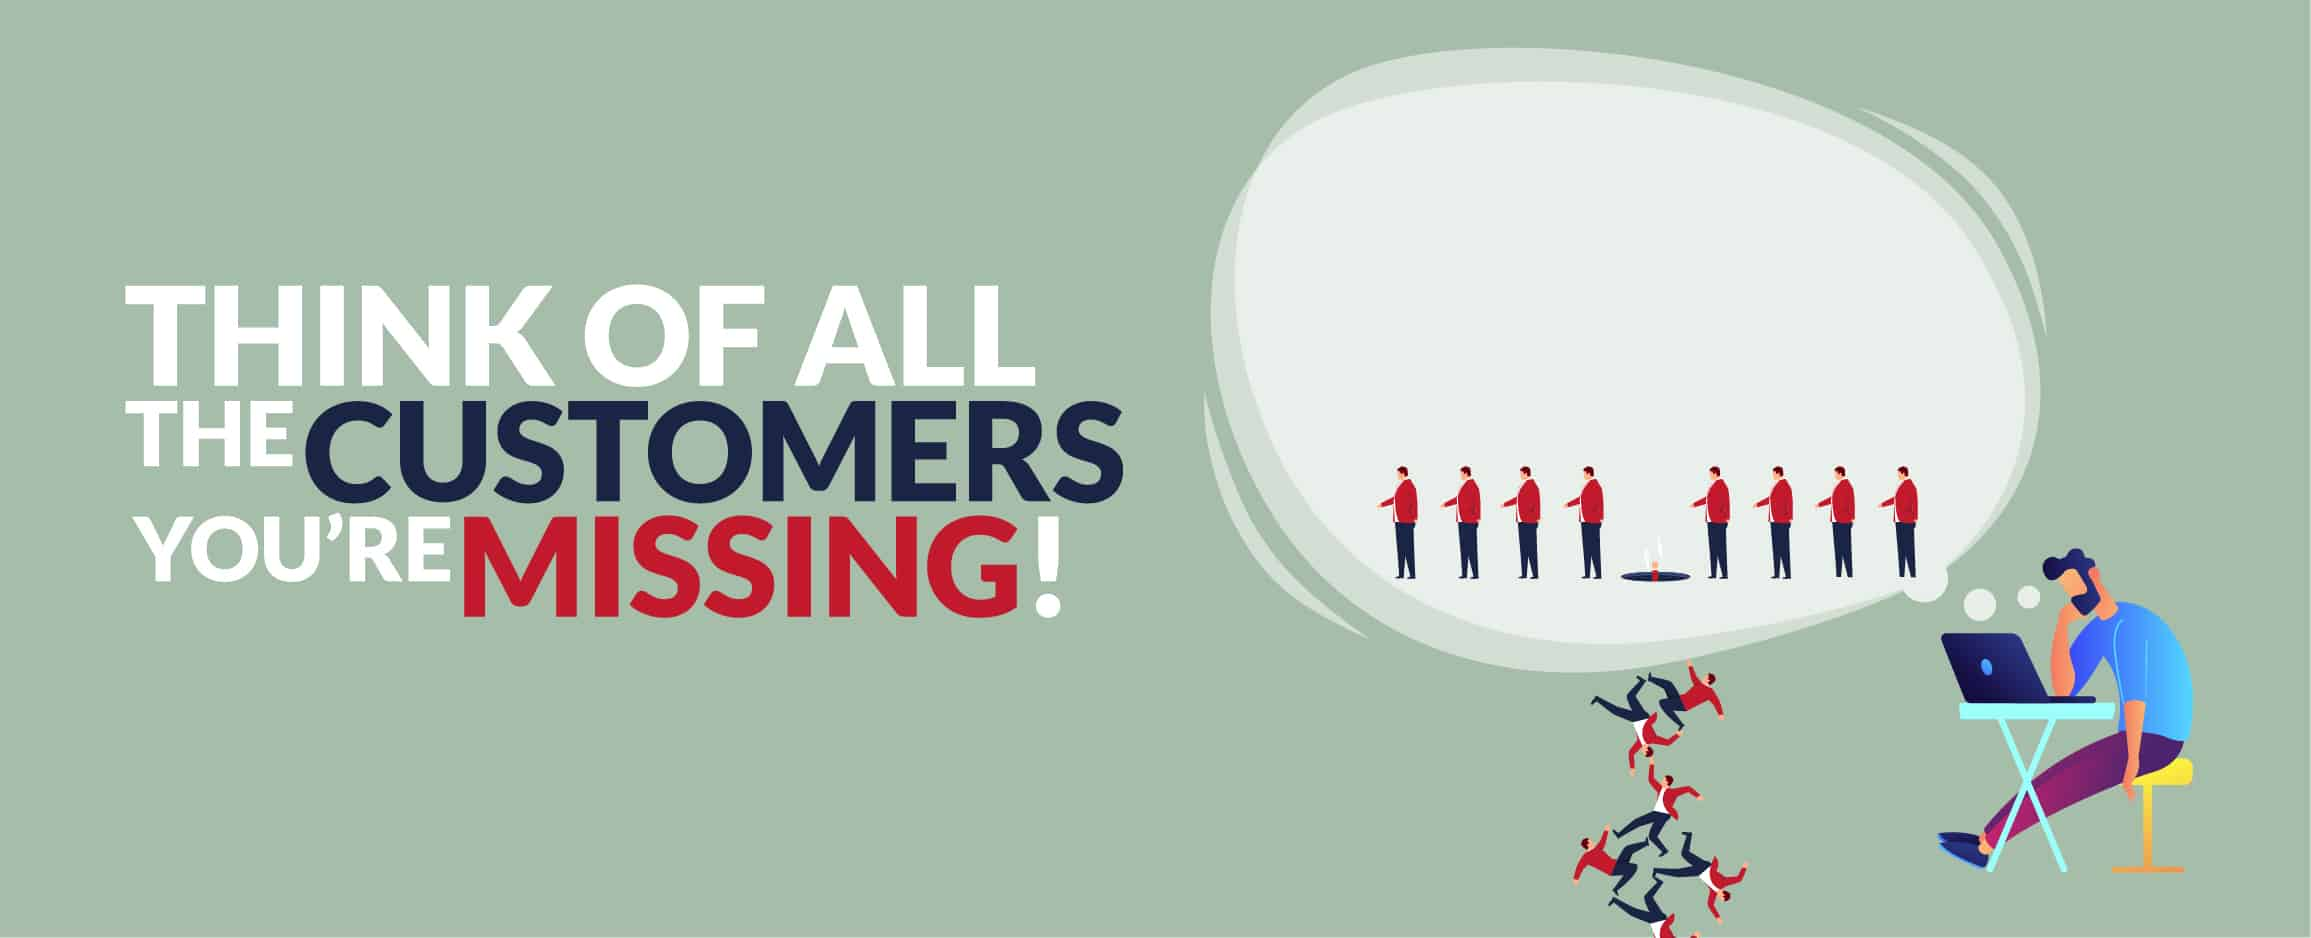 THINK OF ALL THE CUSTOMERS YOU'RE MISSING!